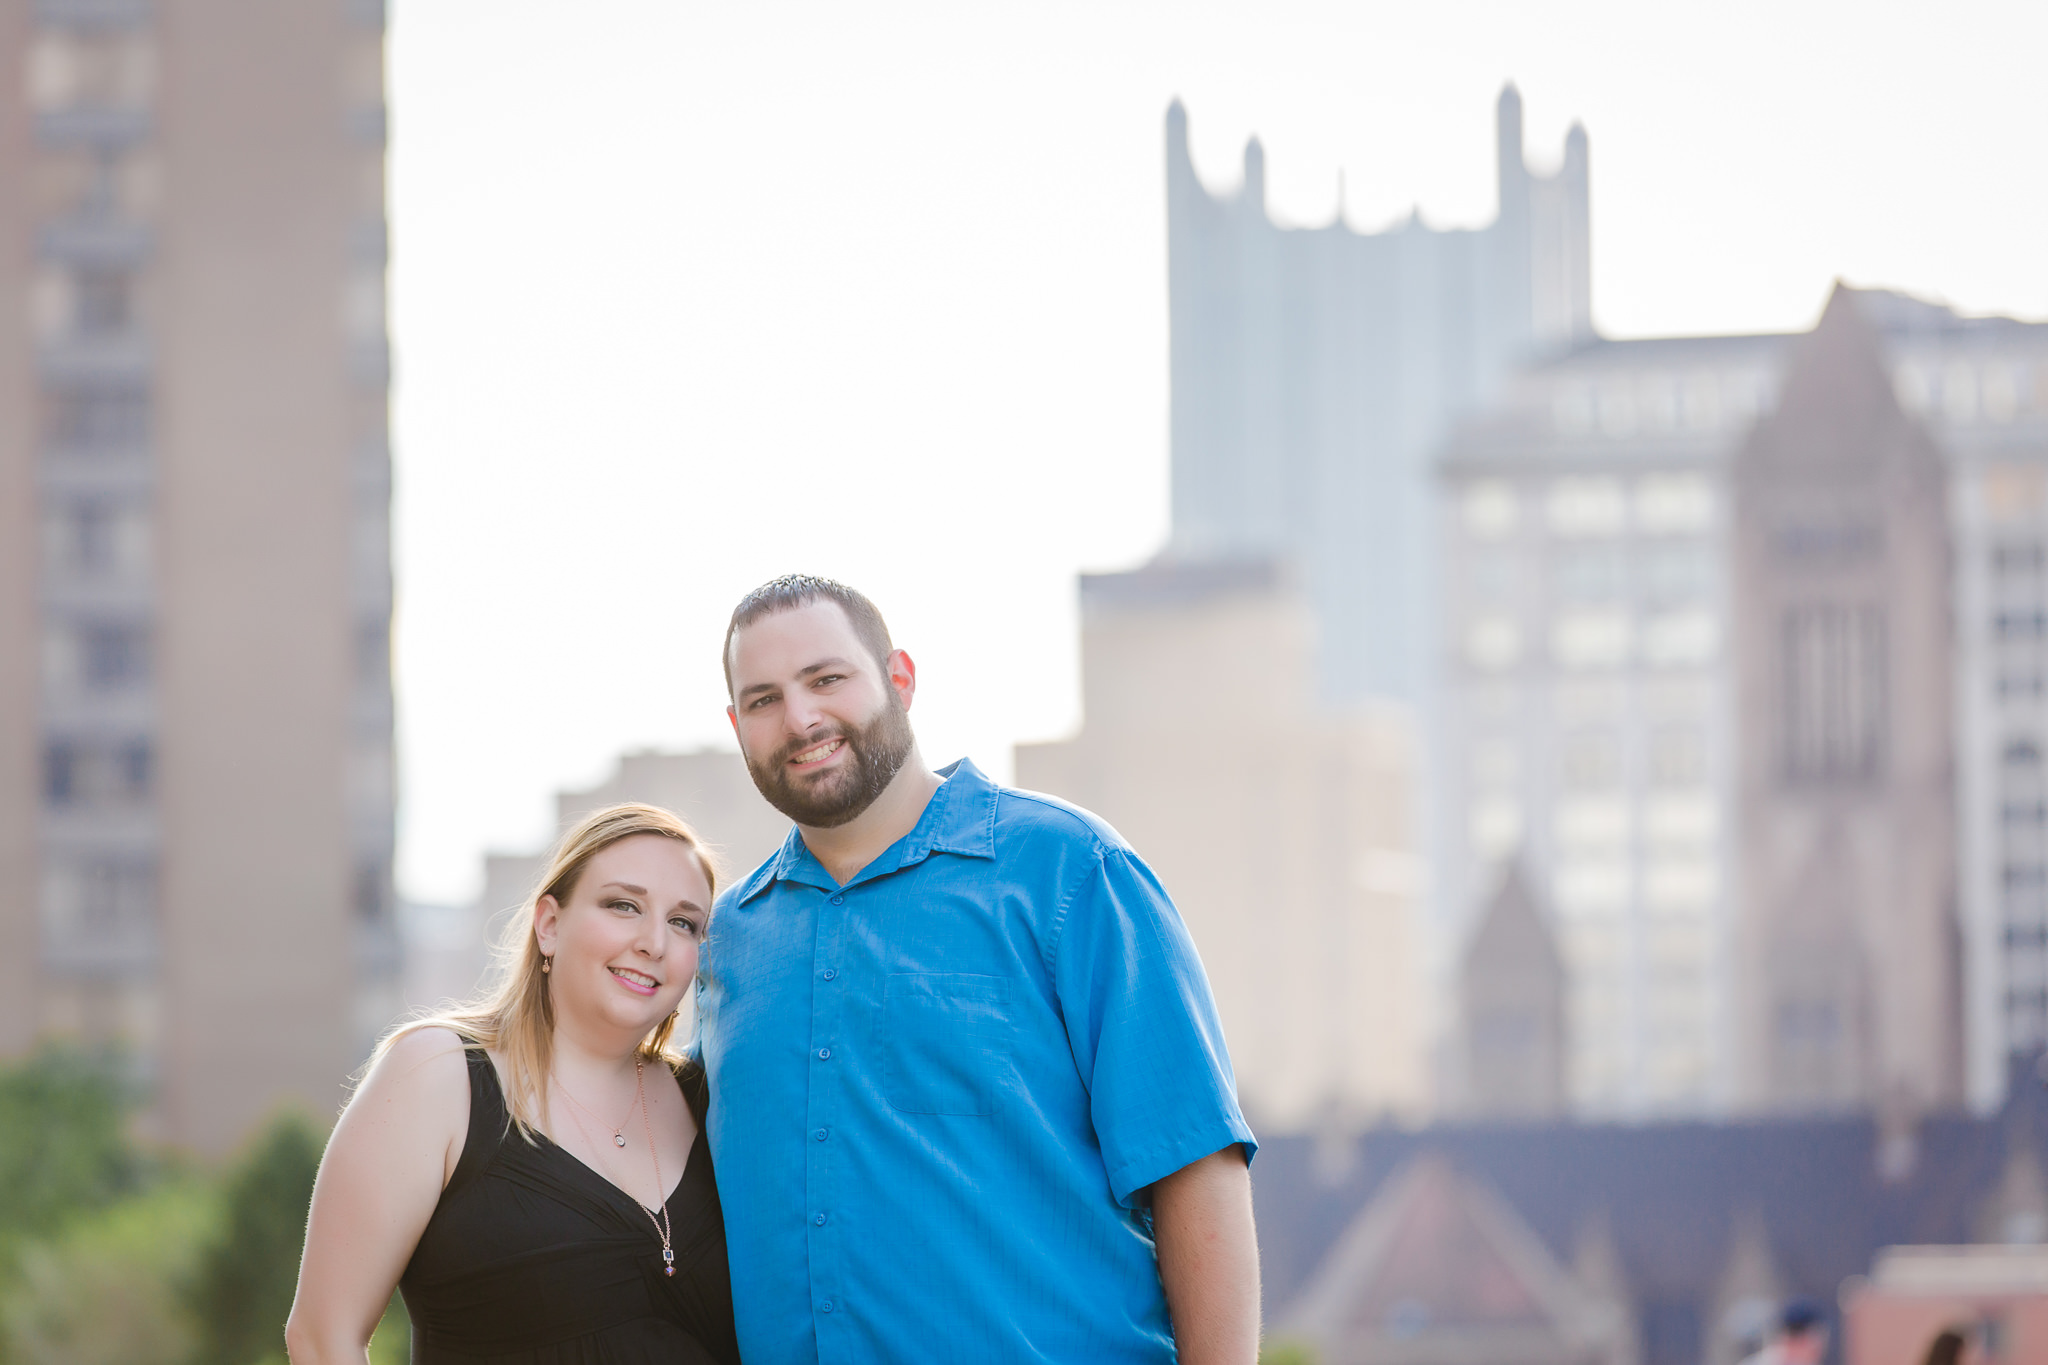 Engaged couple smile for the camera with Pittsburgh's iconic PPG building in the background